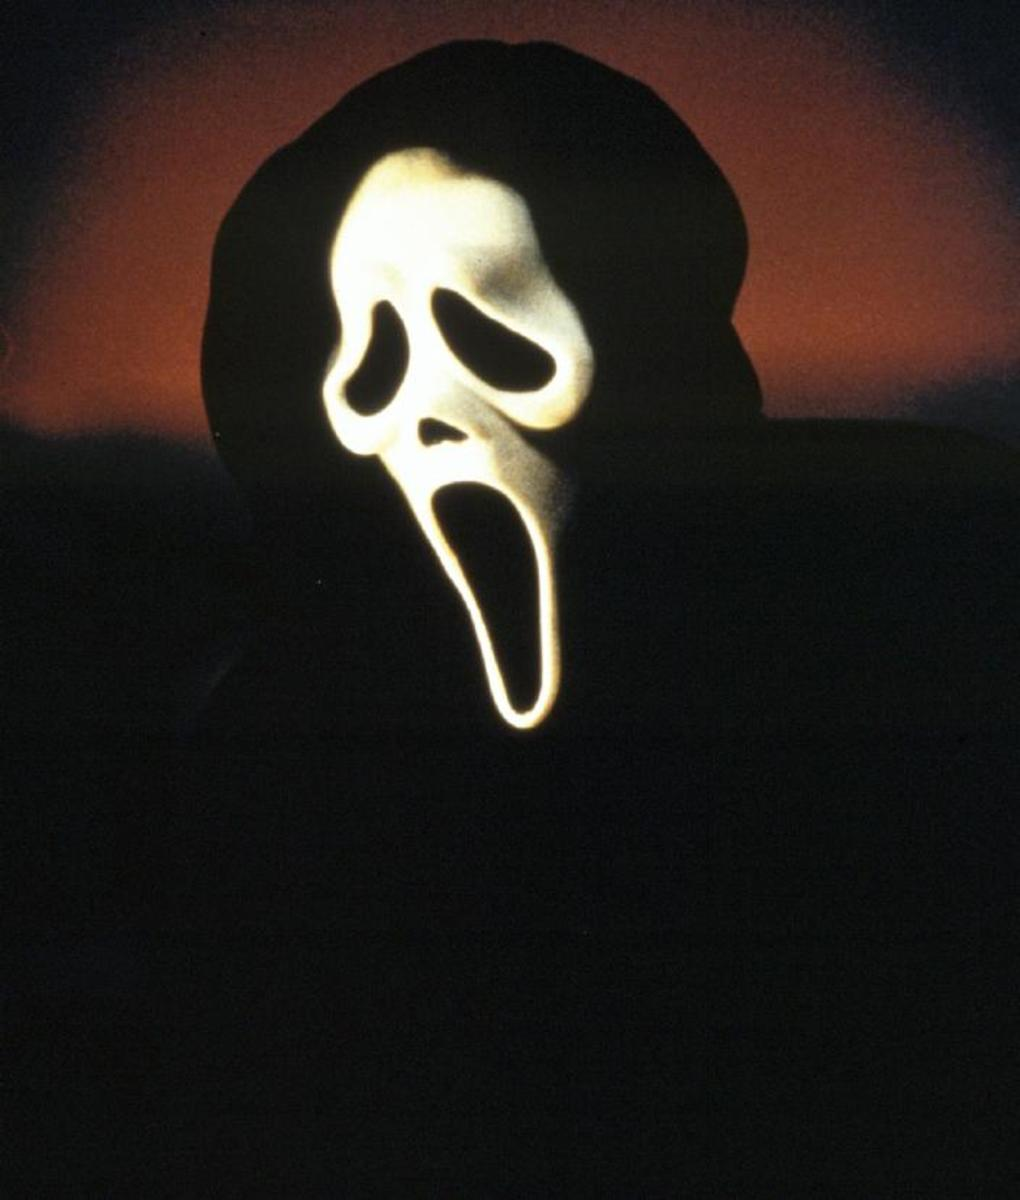 Image from 'Scream'